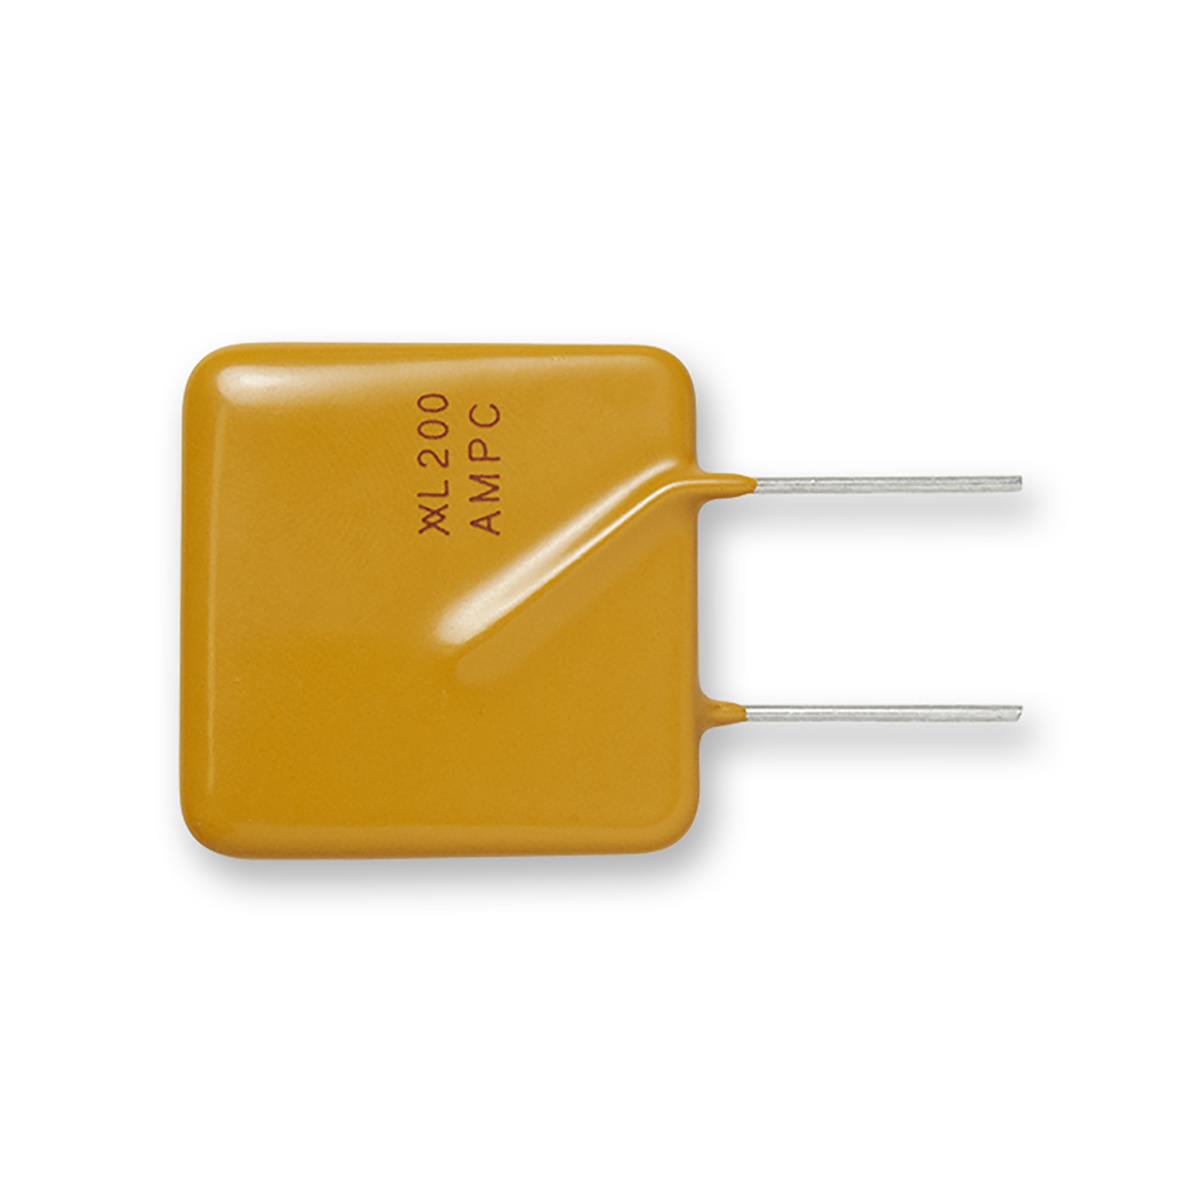 Lvr200s 240 Lvr Series Line Voltage Rated Devices From Security Electronics Systems And Circuits Part 7 Nuts Volts Resettable Ptcs Littelfuse